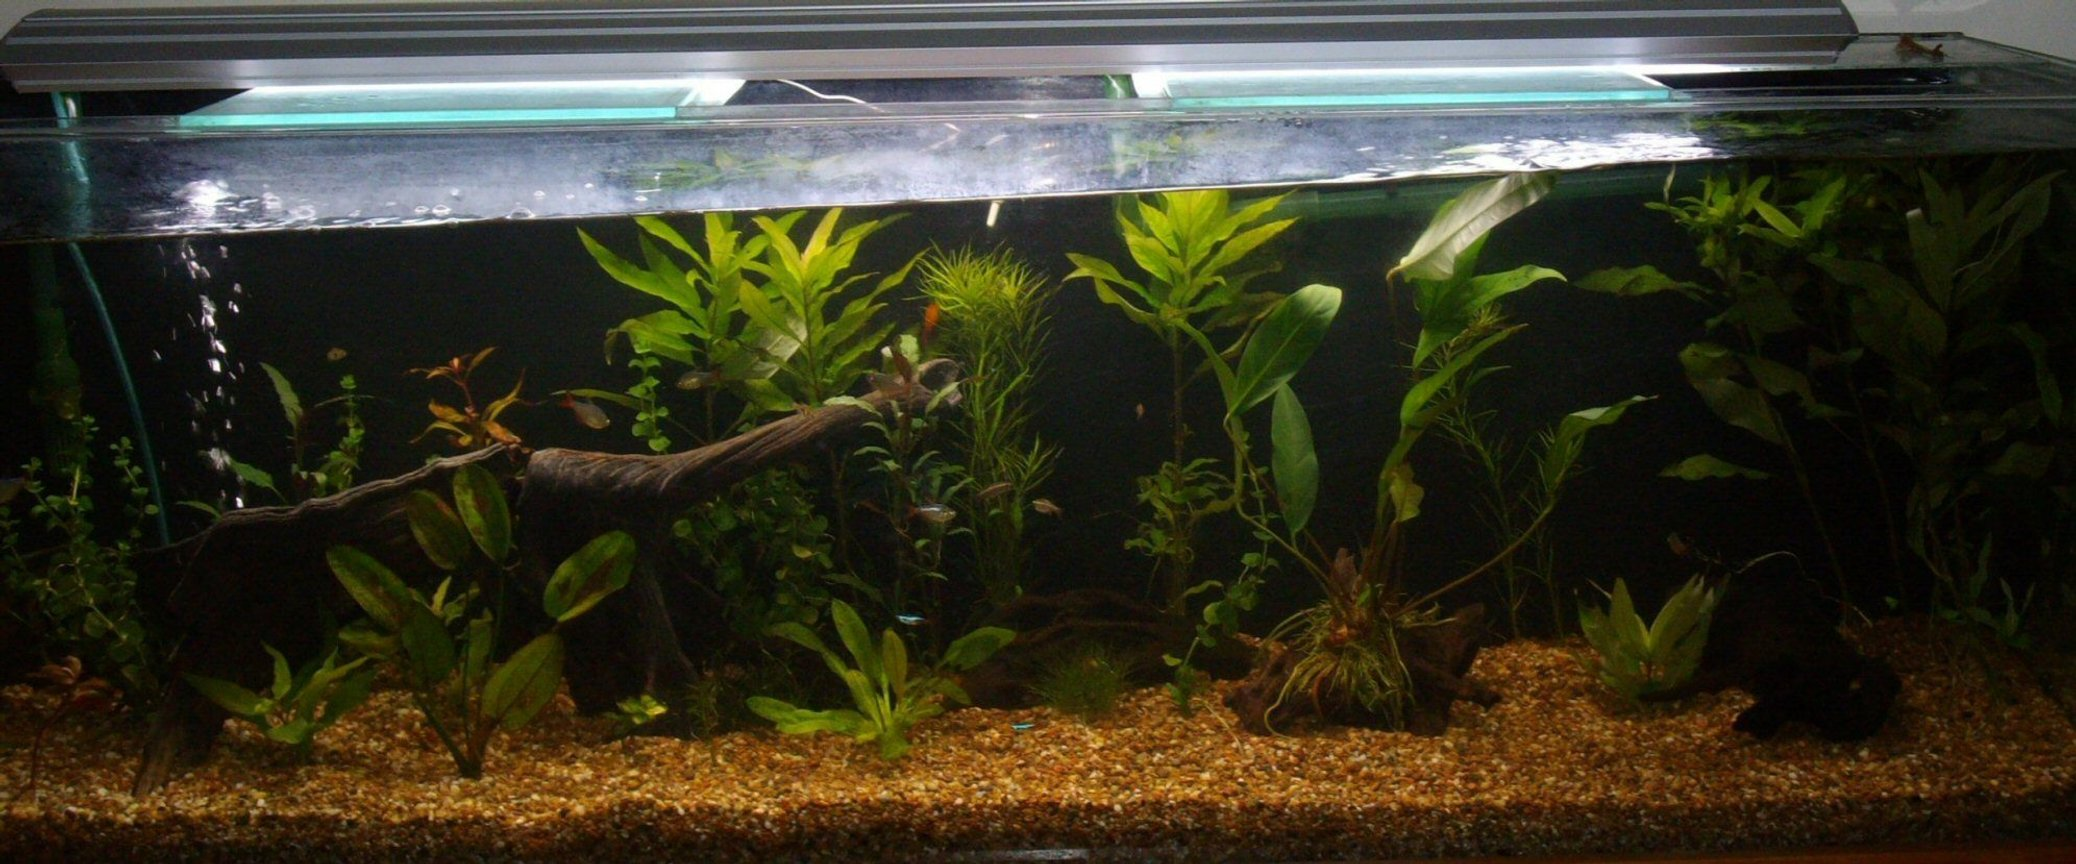 70 gallons planted tank (mostly live plants and fish) - a bit of a tilt..